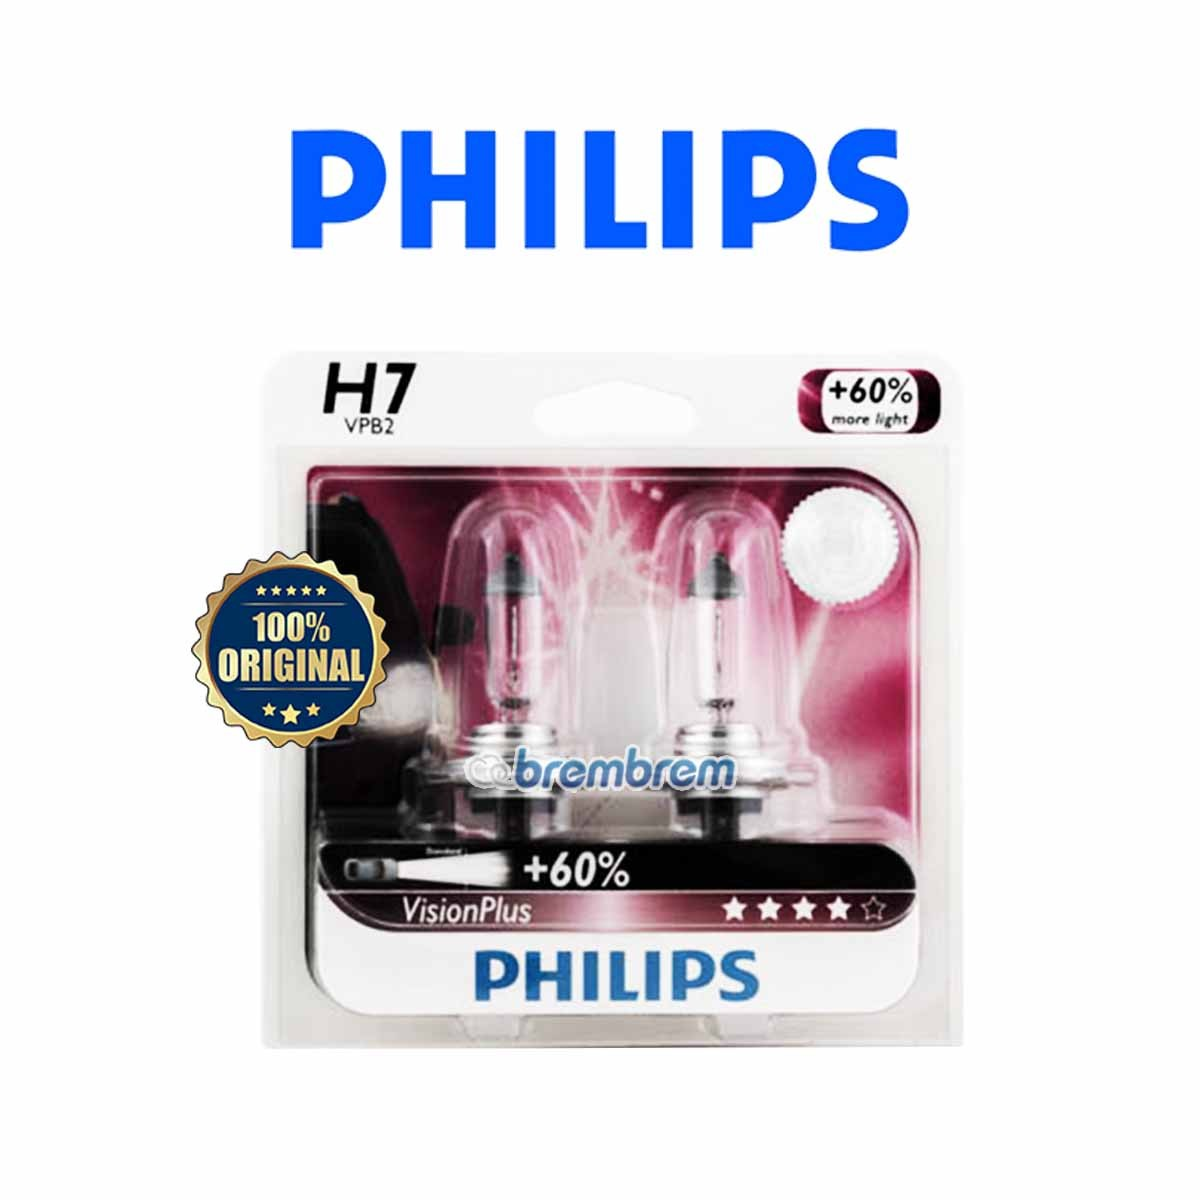 PHILIPS VISION PLUS H7 (3350K) - LAMPU HALOGEN